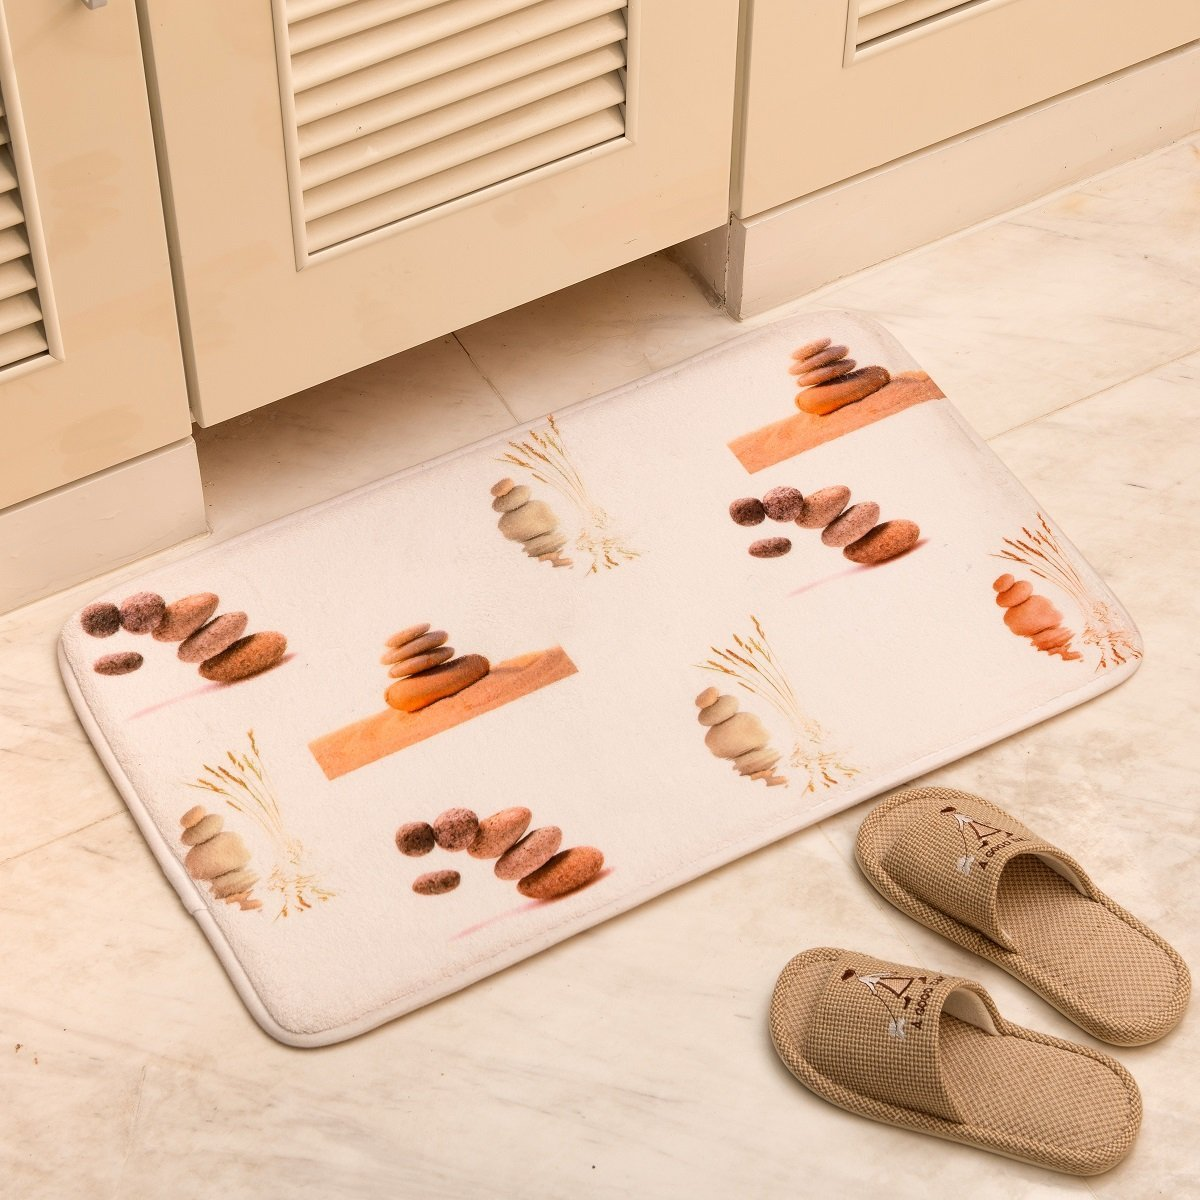 for Bedroom Living Room Aboo AO-4575 Bath Rug Kitchen Carpet Runner Mat Floor Mats Soft Doormat 29.5 x 17.7 Inch White with Red Pattern